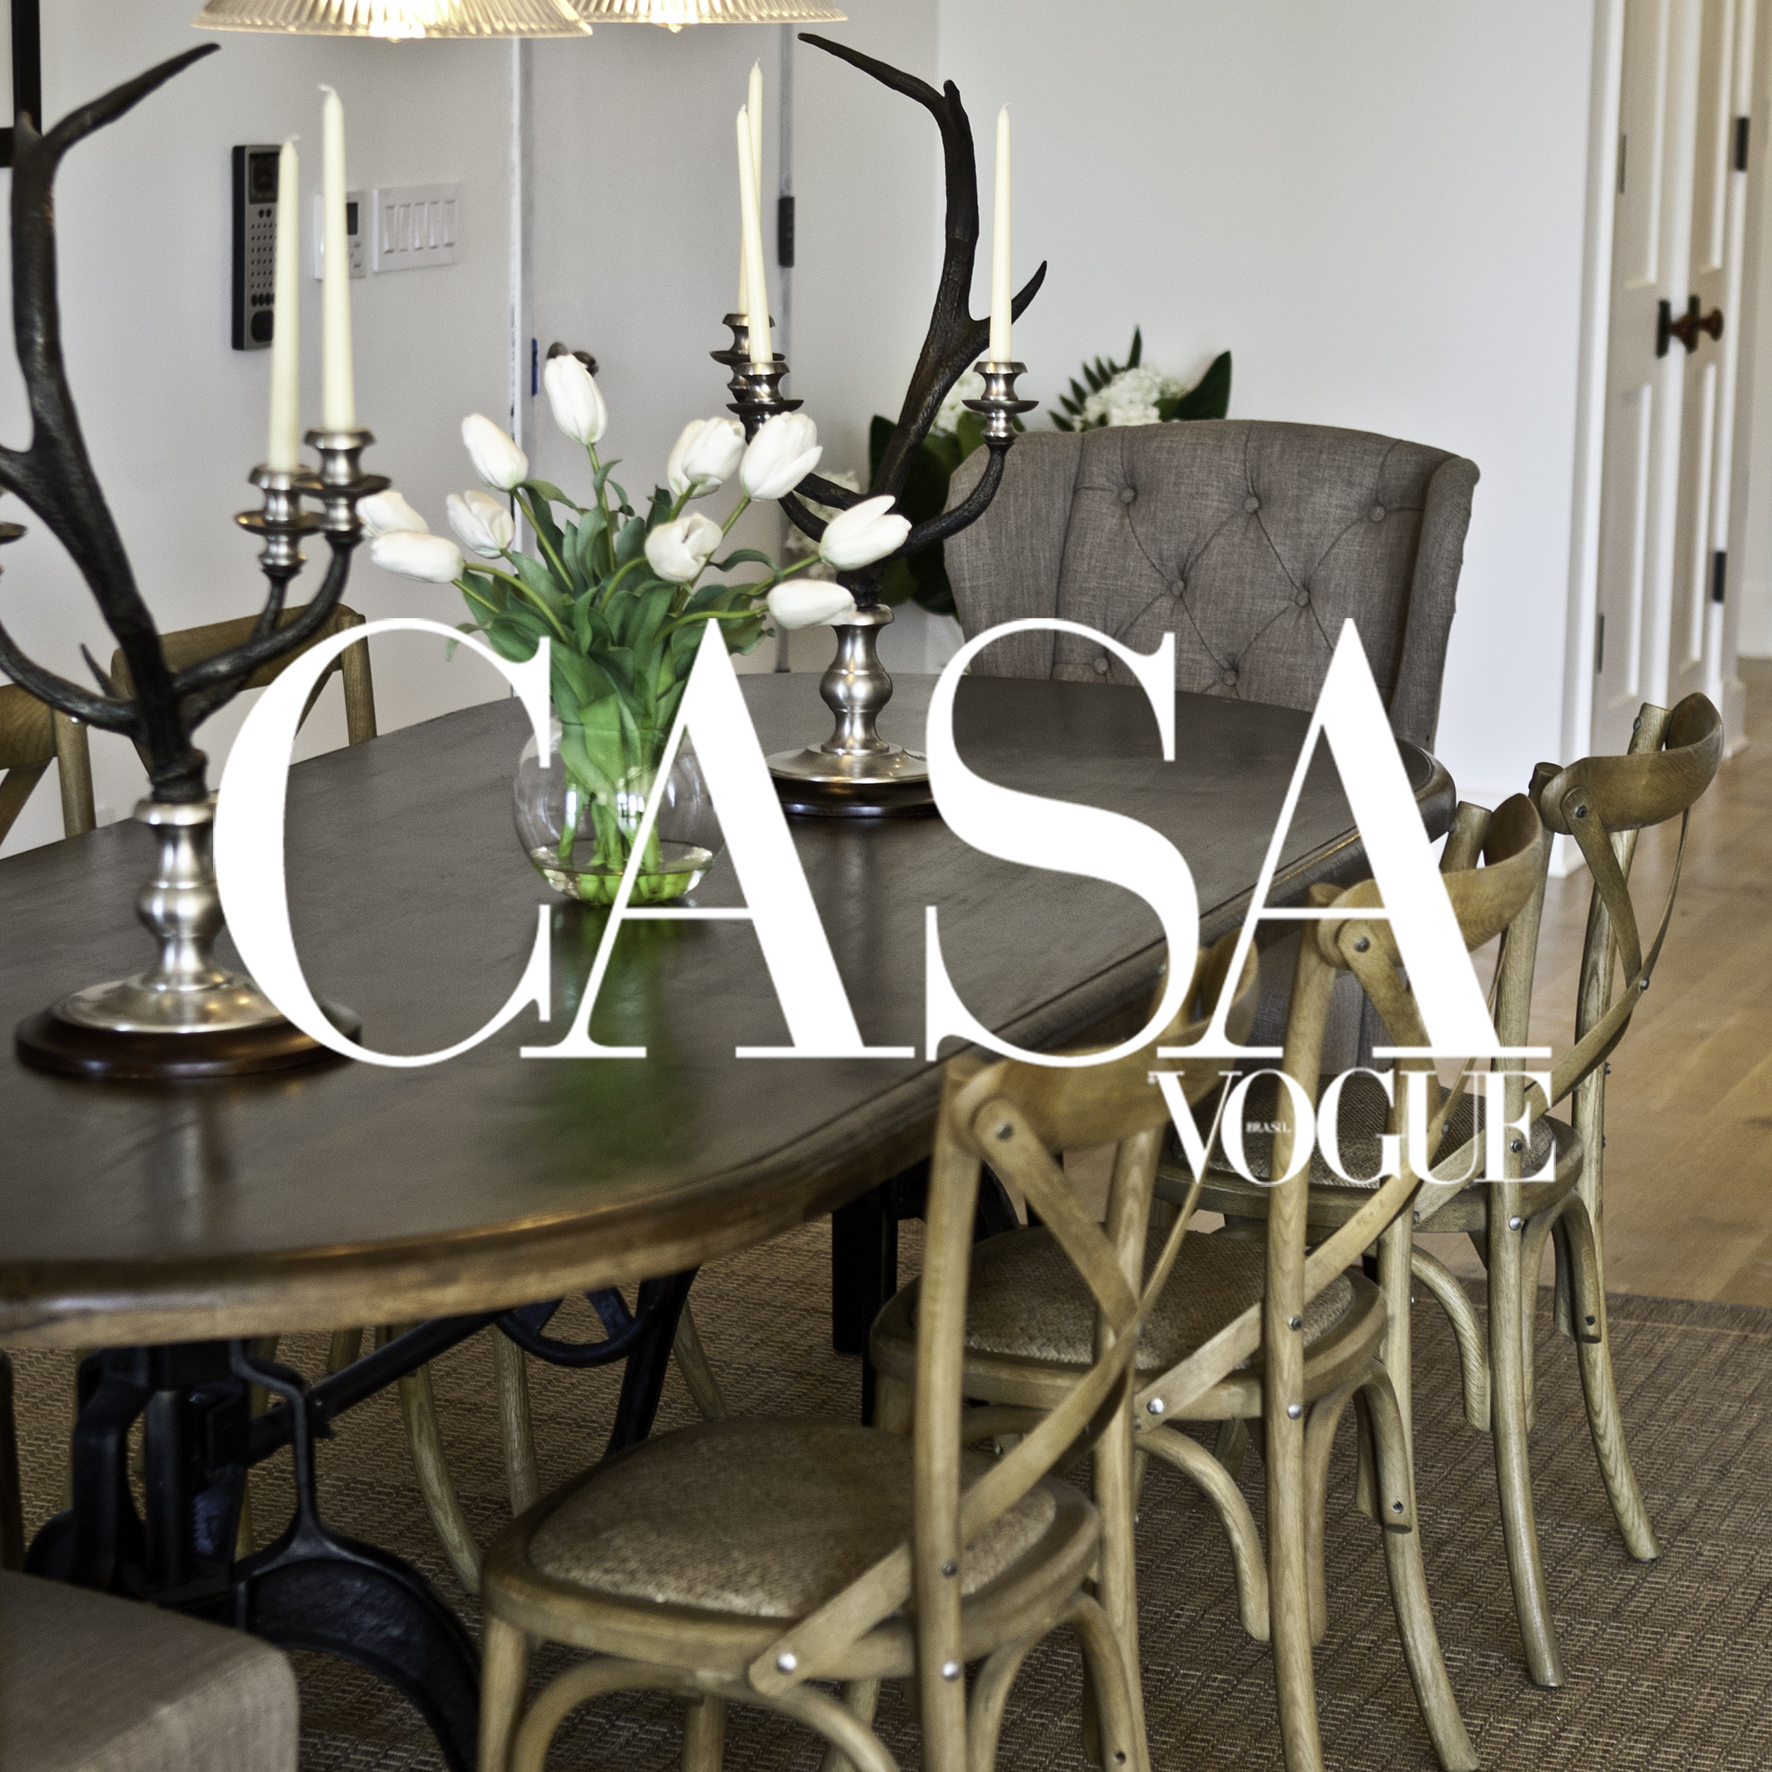 MB Design. Casa Vogue